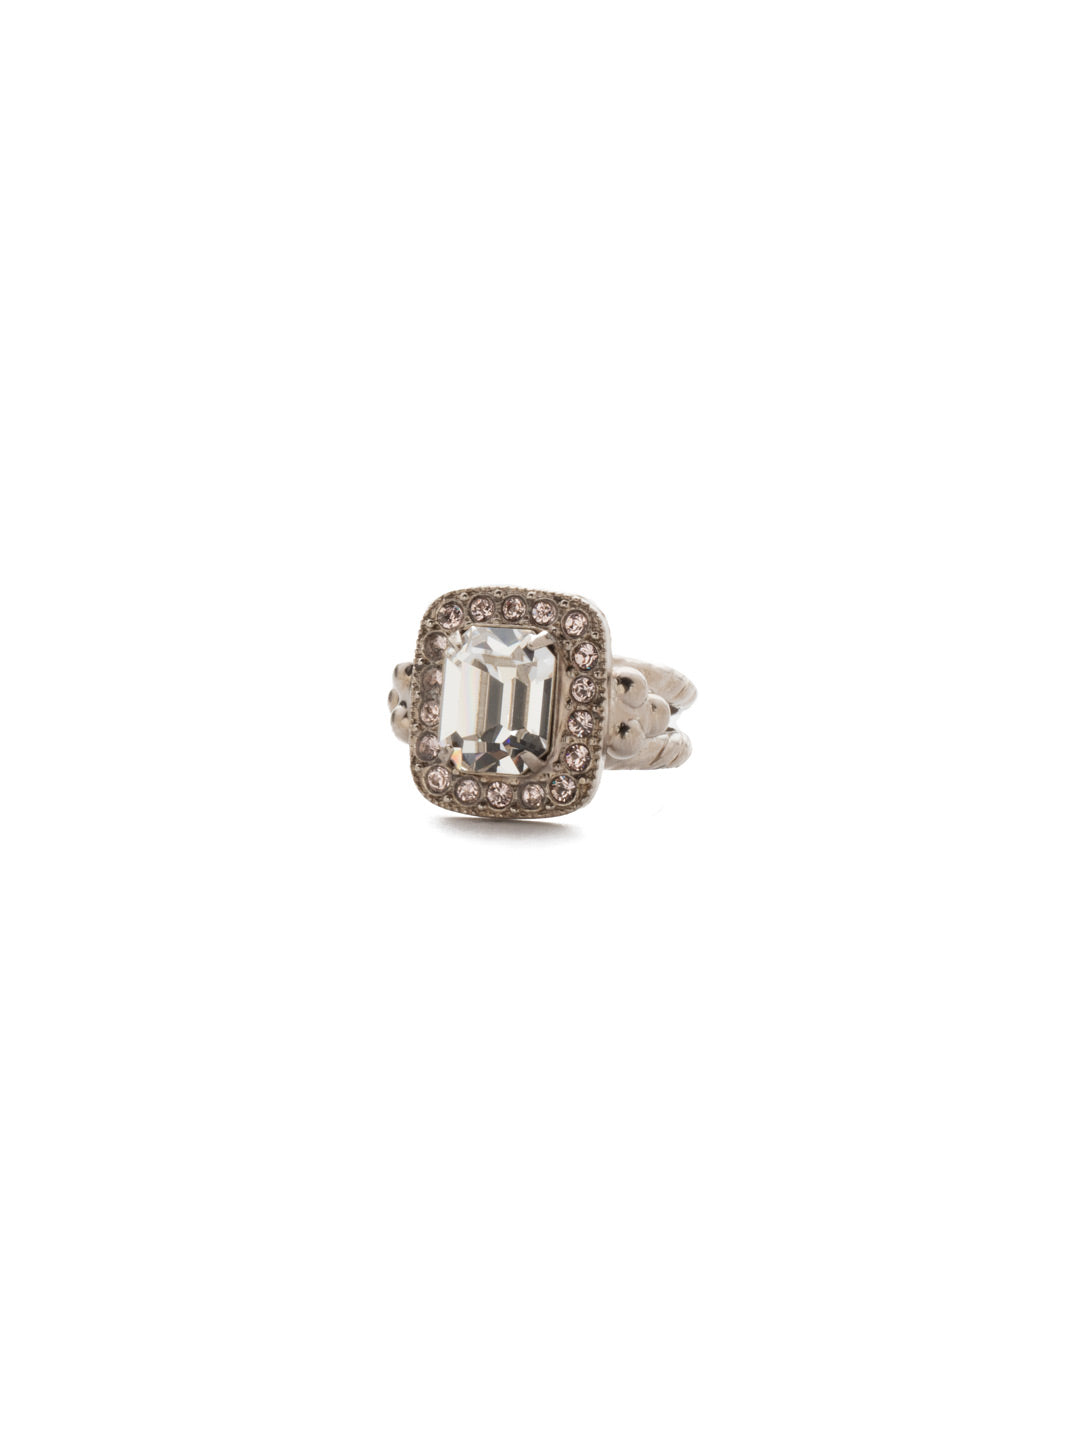 Opulent Octagon Cocktail Ring - RDQ41ASPLS